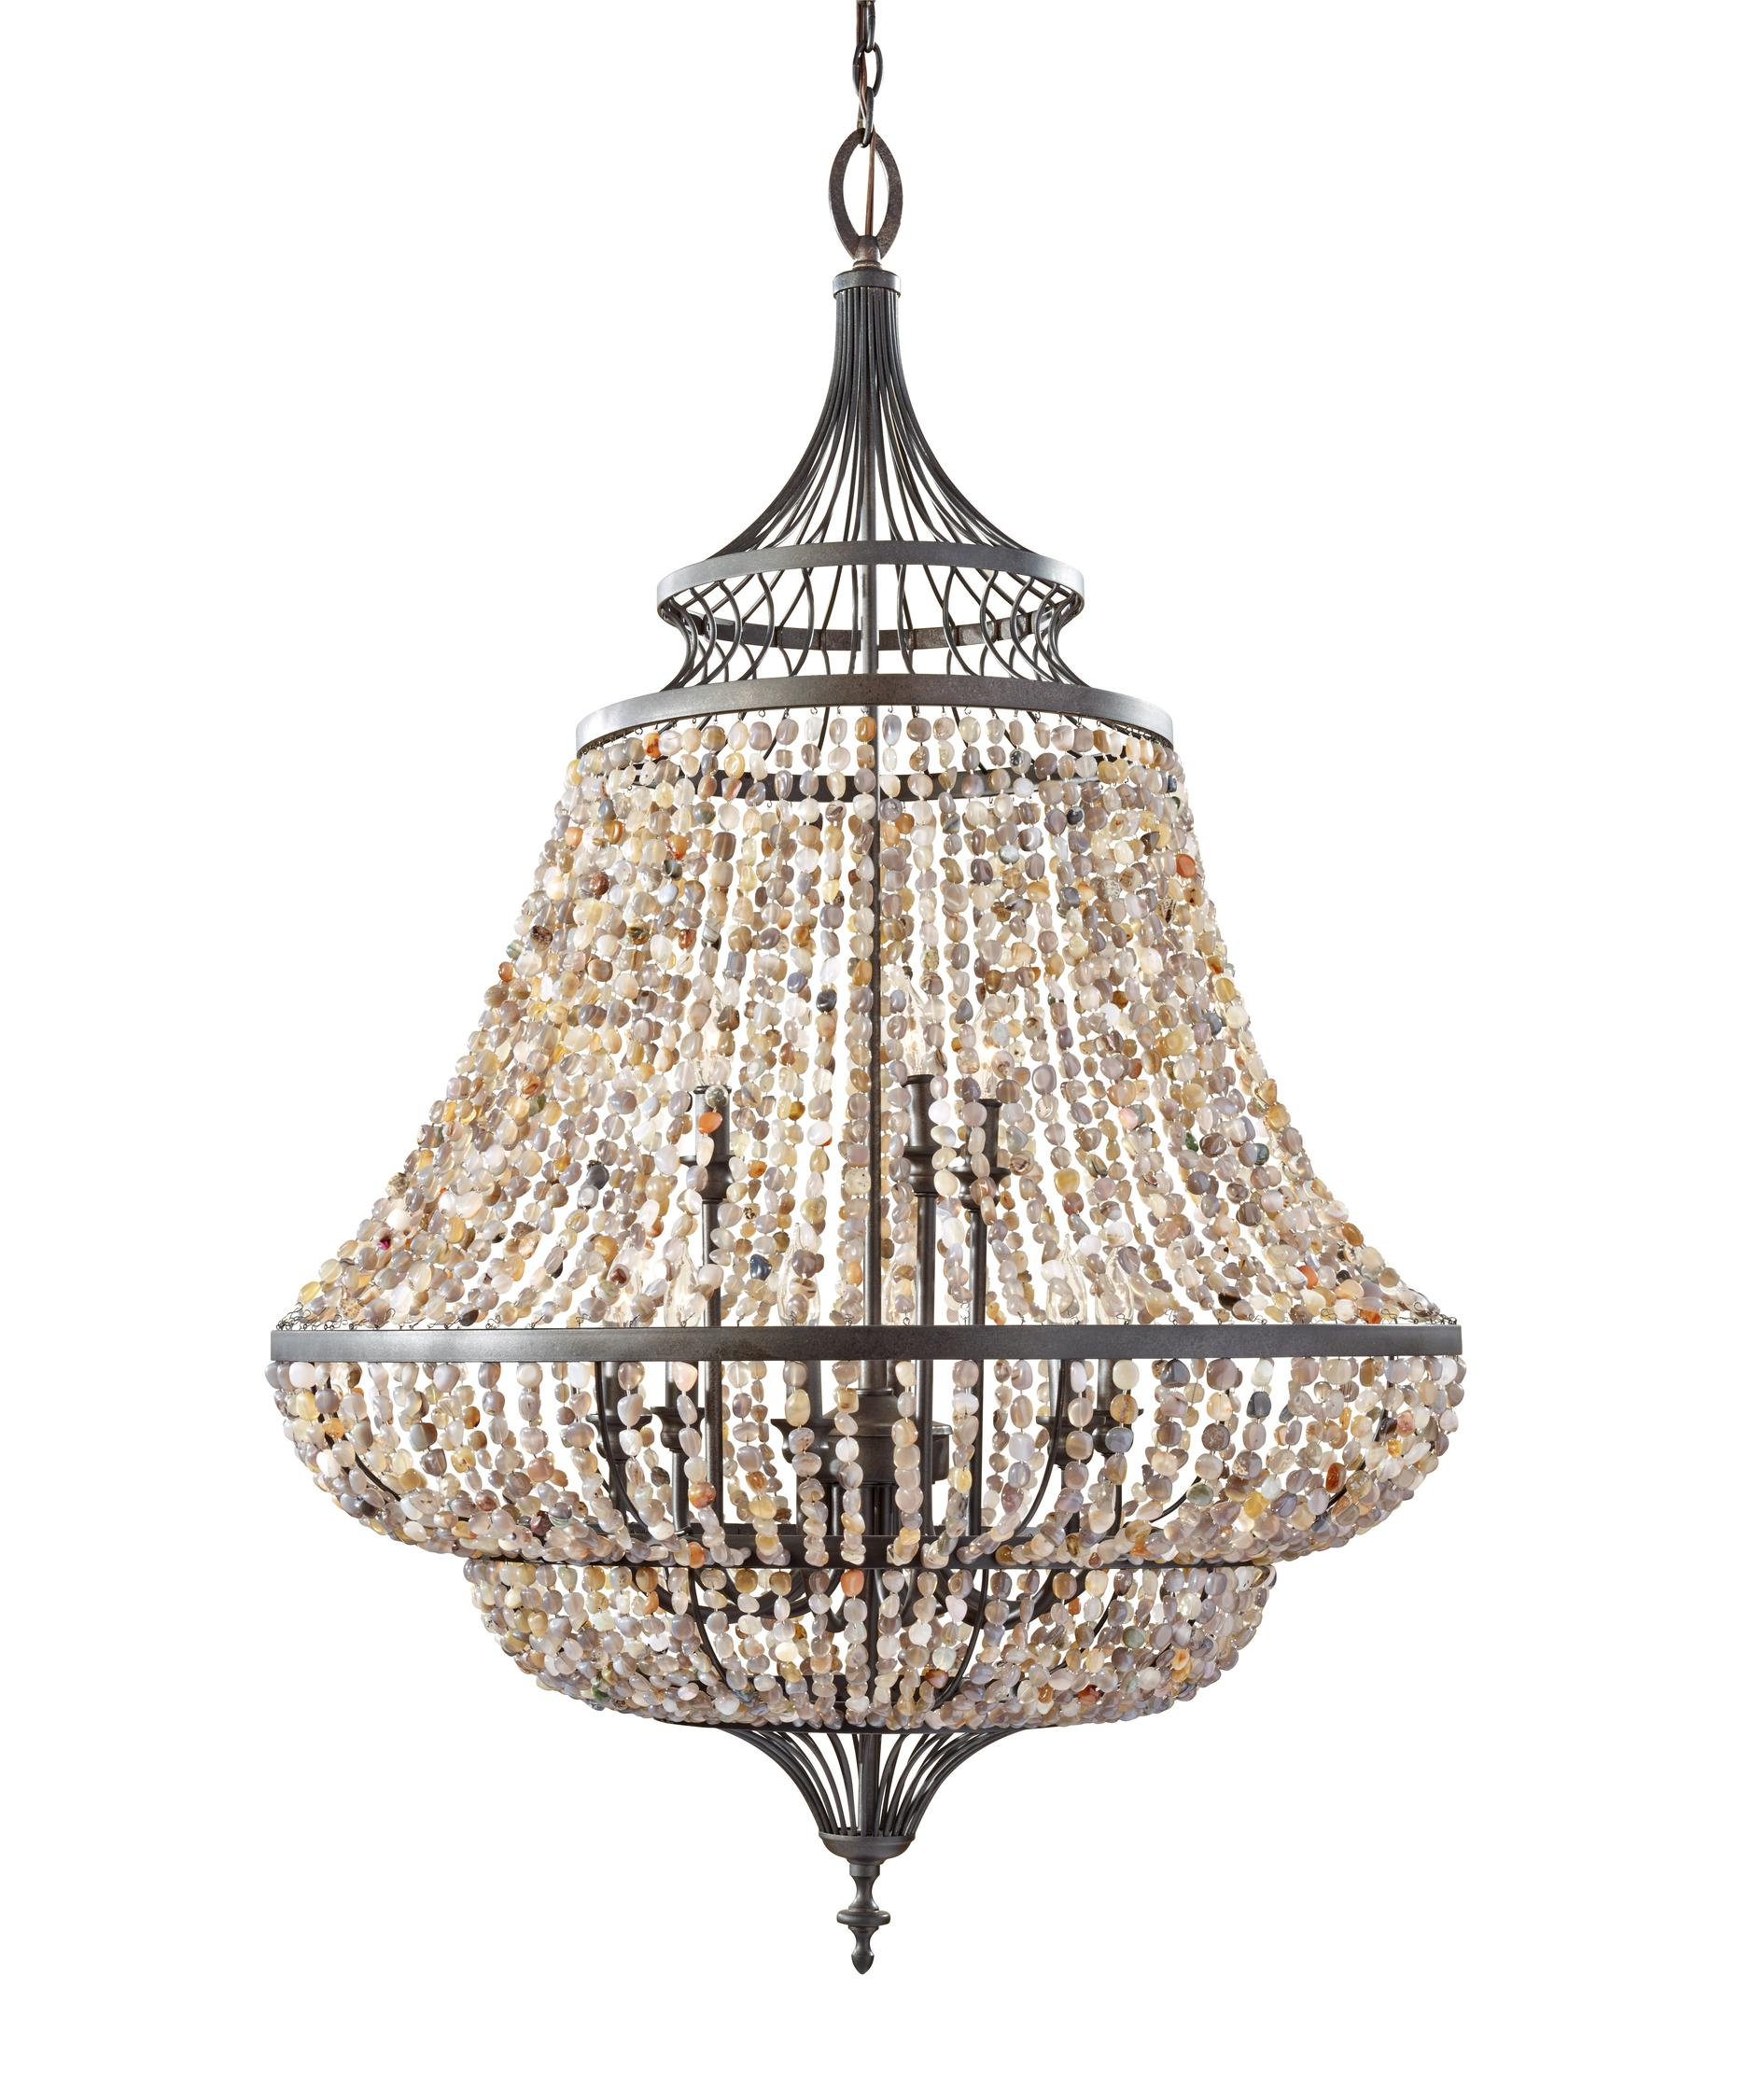 Murray Feiss Maarid 30 Inch Wide 9 Light Chandelier – Murray Feiss Chandeliers